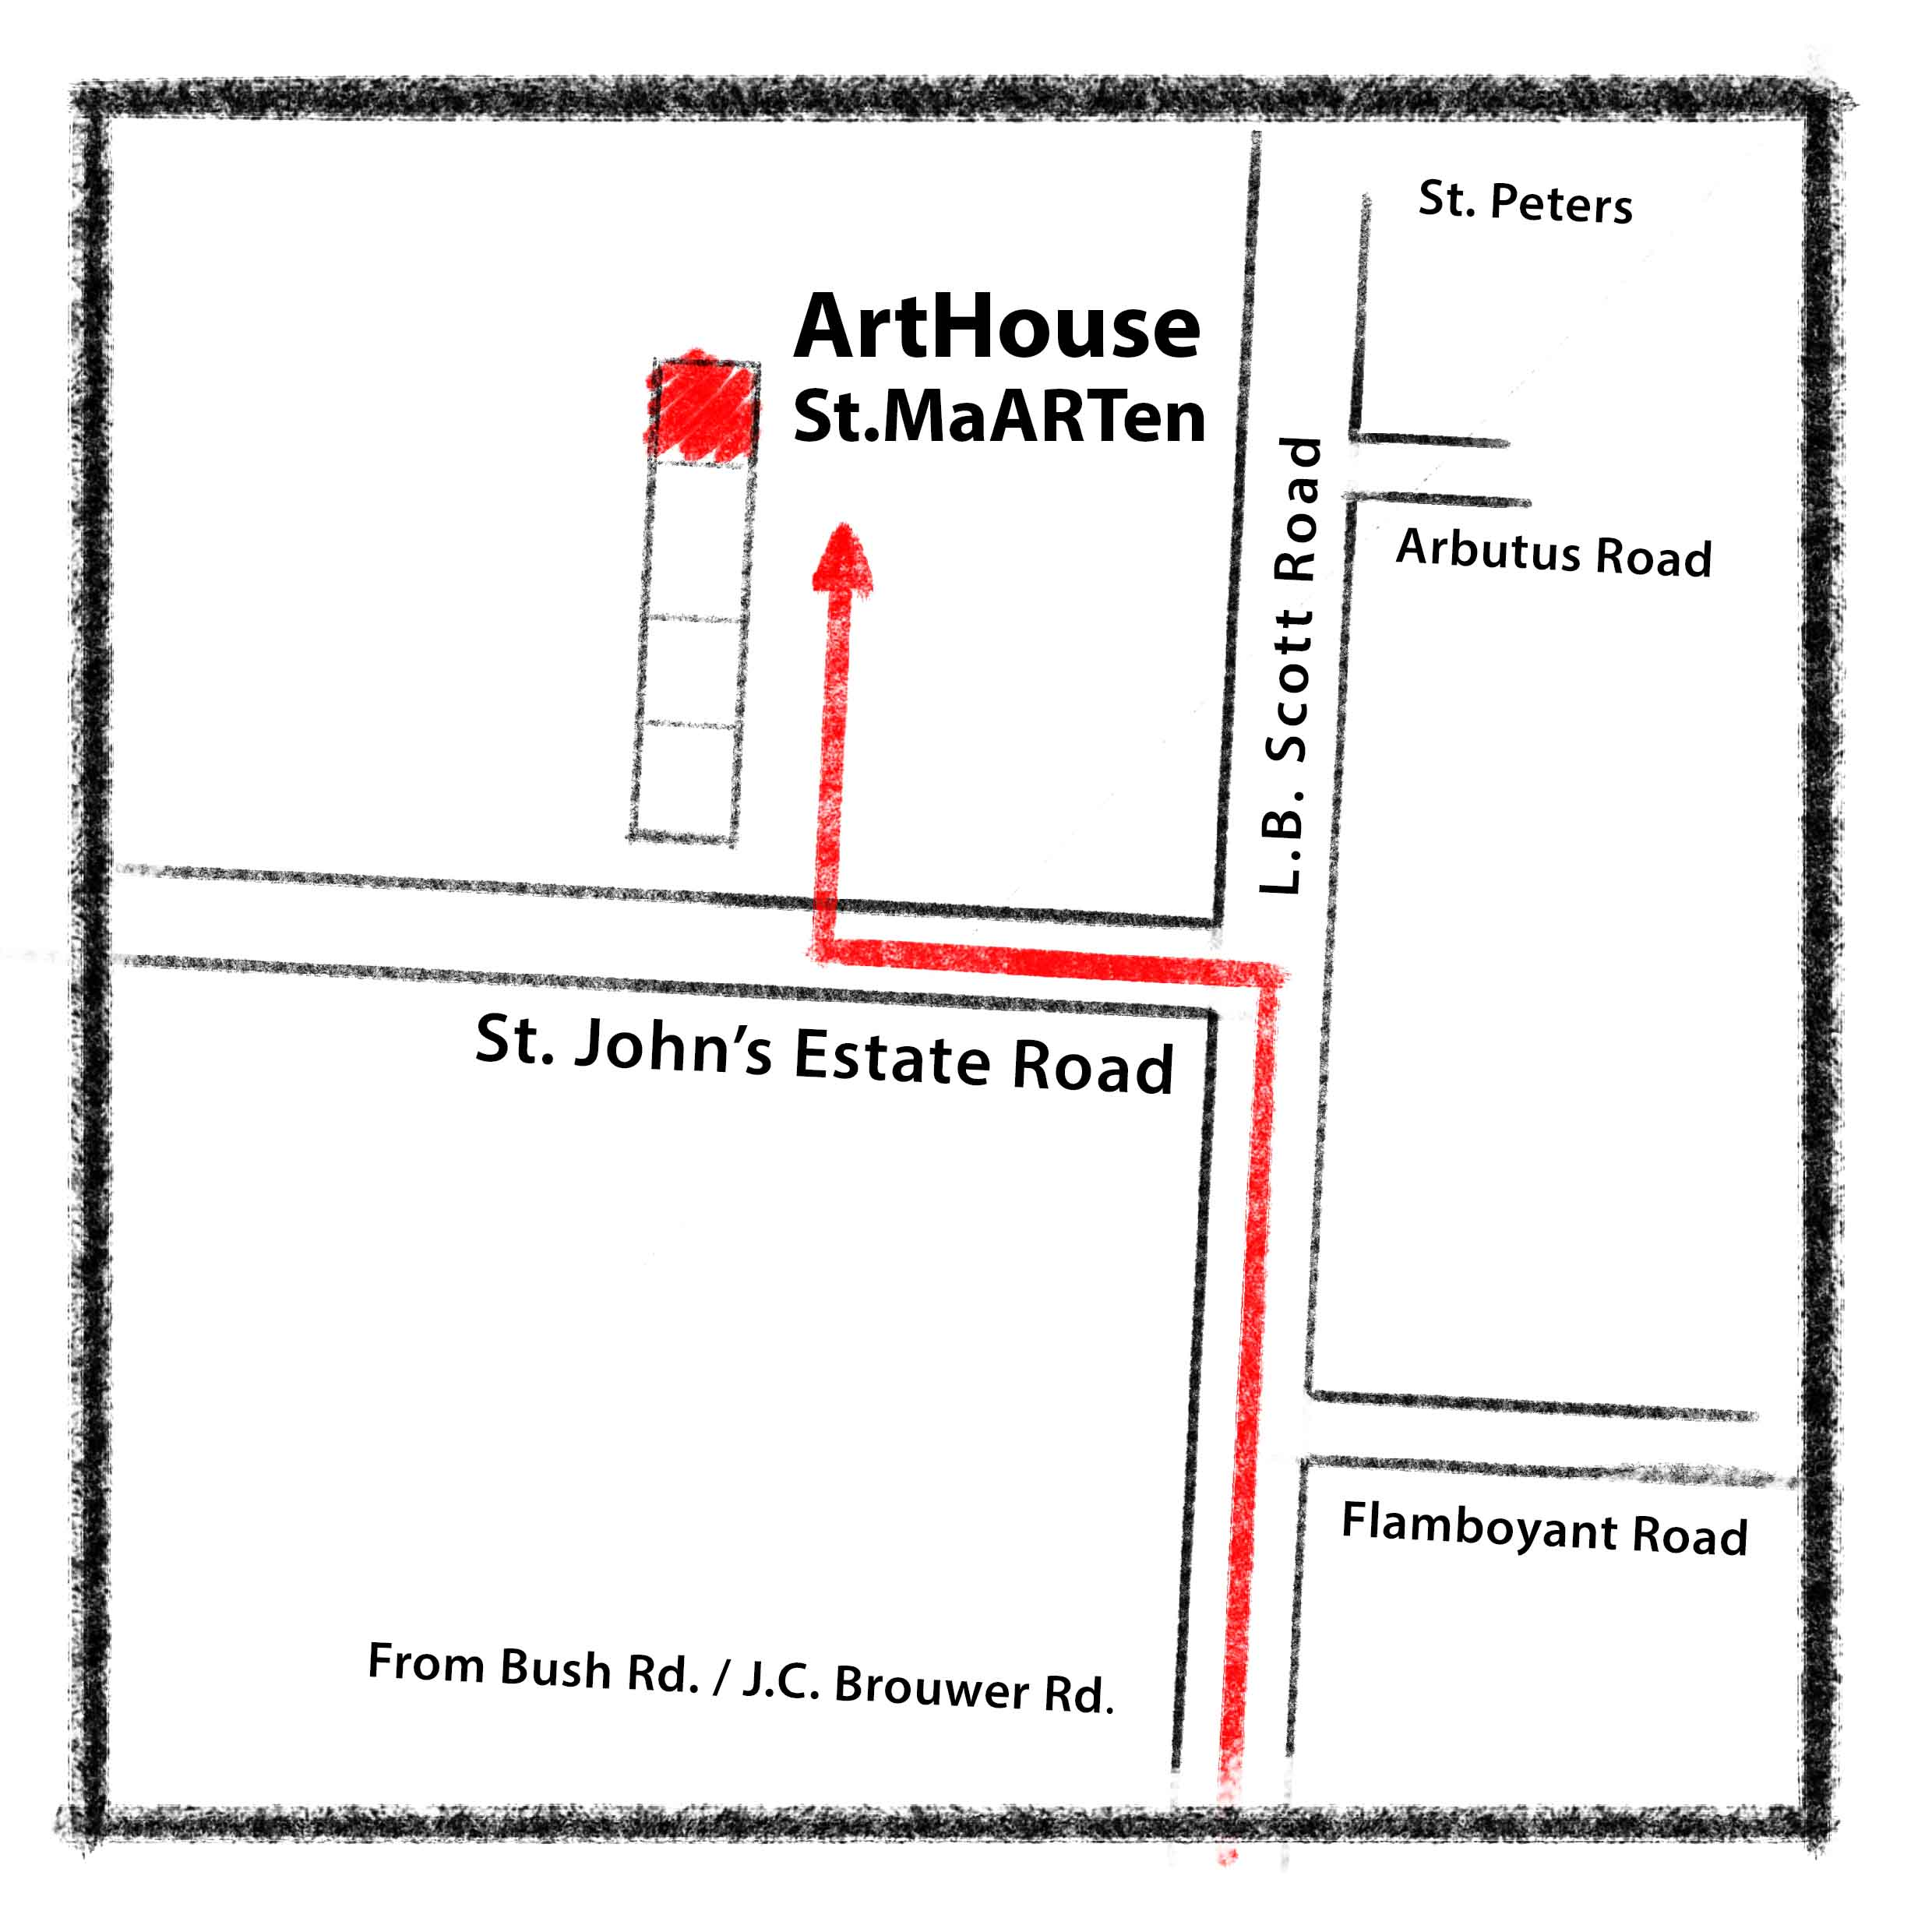 Art Classes - To Sign up for Art Classes e-mail, phone or visit.  ArtHouse St. MaARTenSt. John's Estate Commercial CenterUnit 5, St.John's Estate RoadSt. Maarten, Dutch Caribbean Art Class Schedule Mobile:          +1 721 522 4180Whatsapp:      +1 721 522 4180Email:            arthouseSXM@gmail.comWebsite:         www.arthouseSXM.com